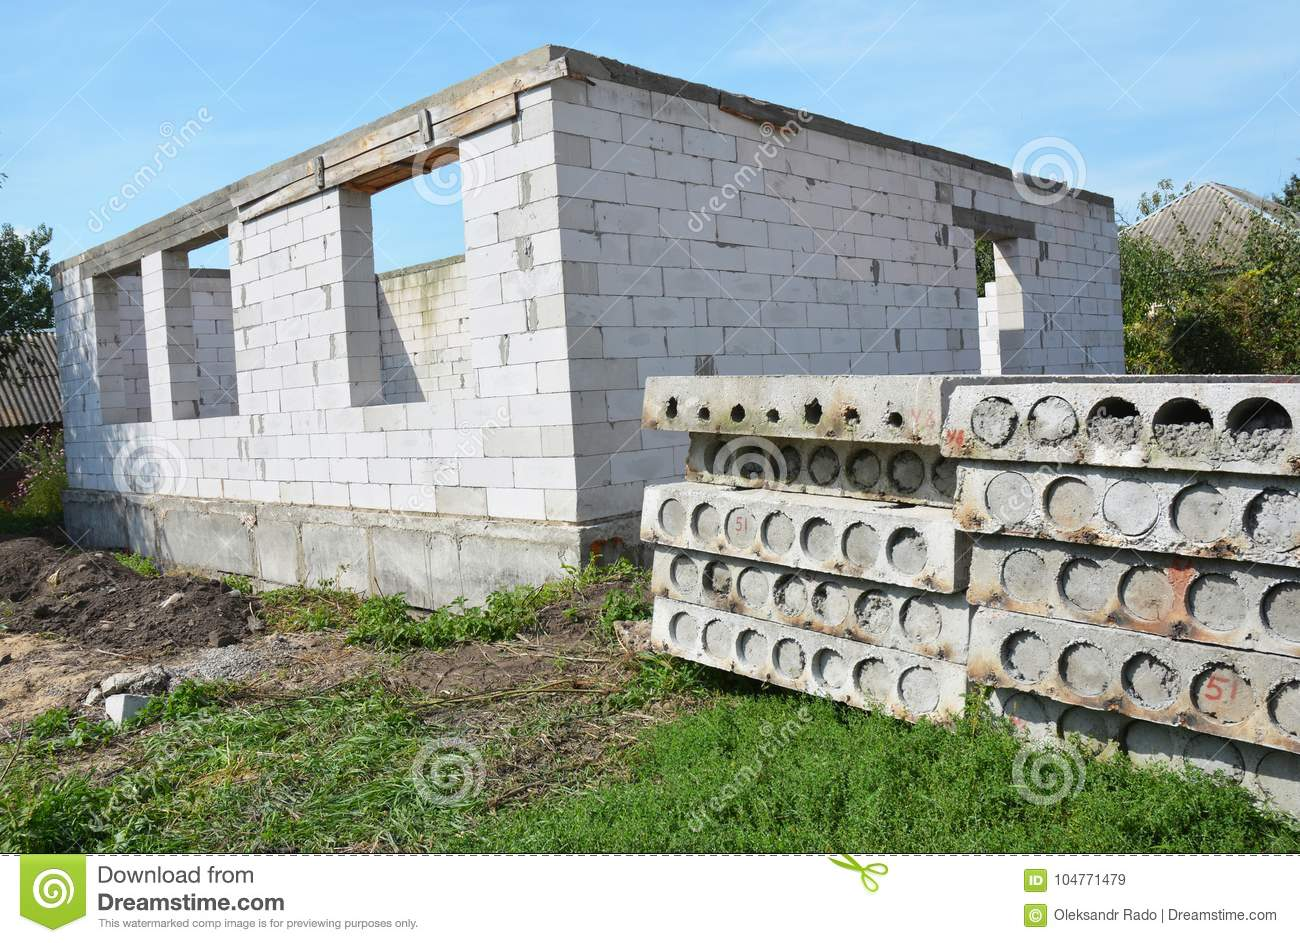 The foundation for the house of aerated concrete: advantages and disadvantages 46